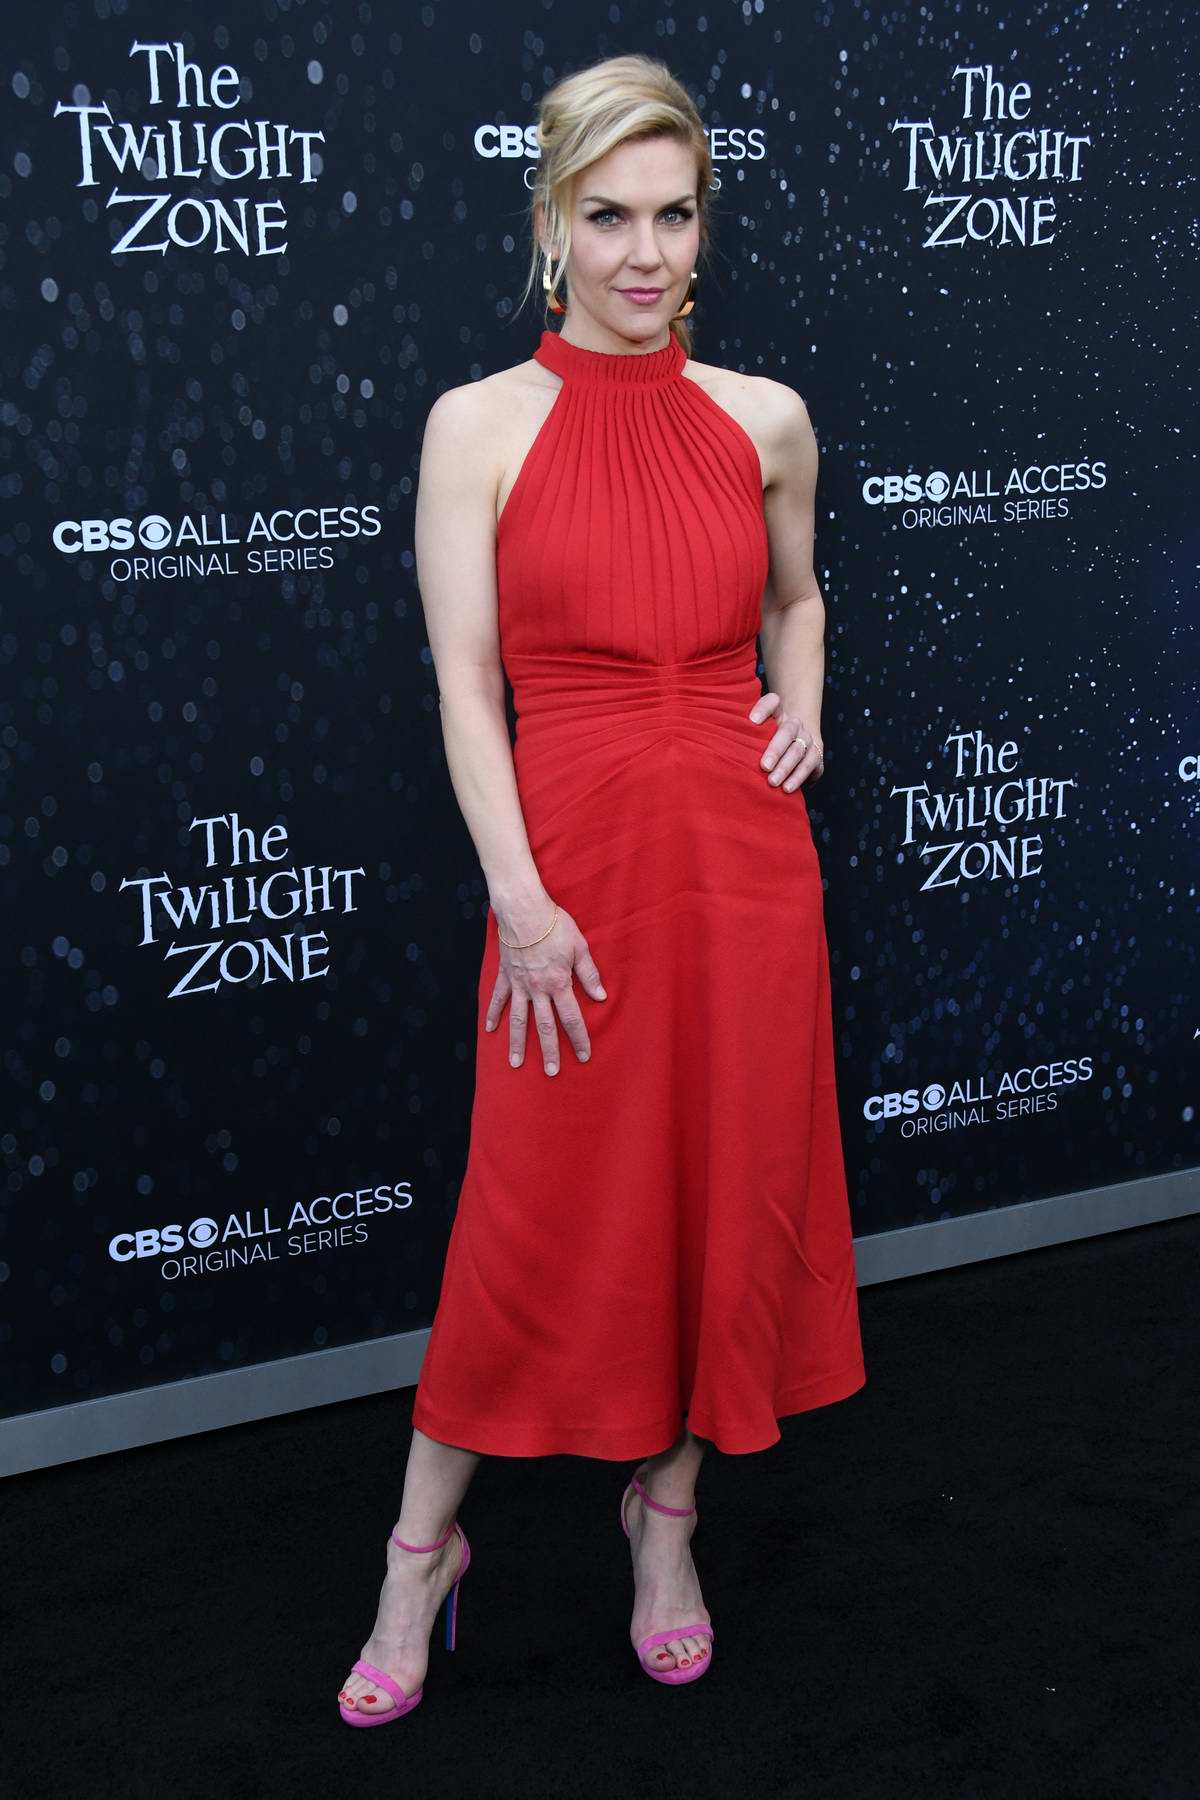 Rhea Seehorn attends 'The Twilight Zone' TV show premiere in Los Angeles